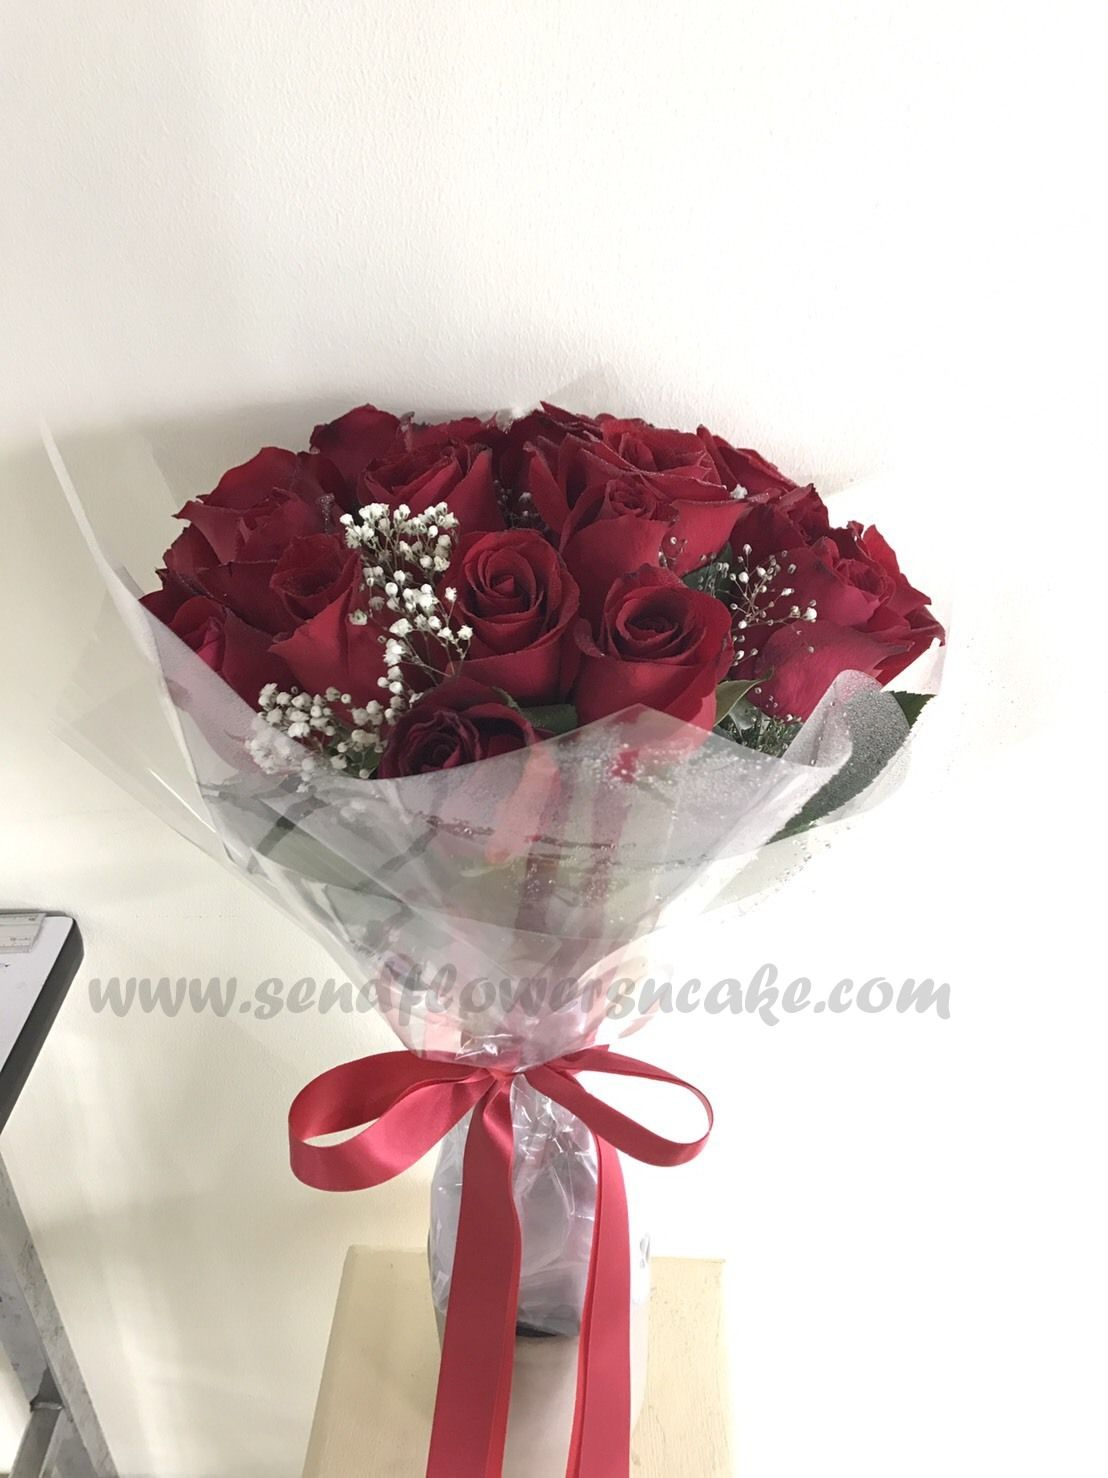 24 red roses bouquet delivered at bangkok,thailand by